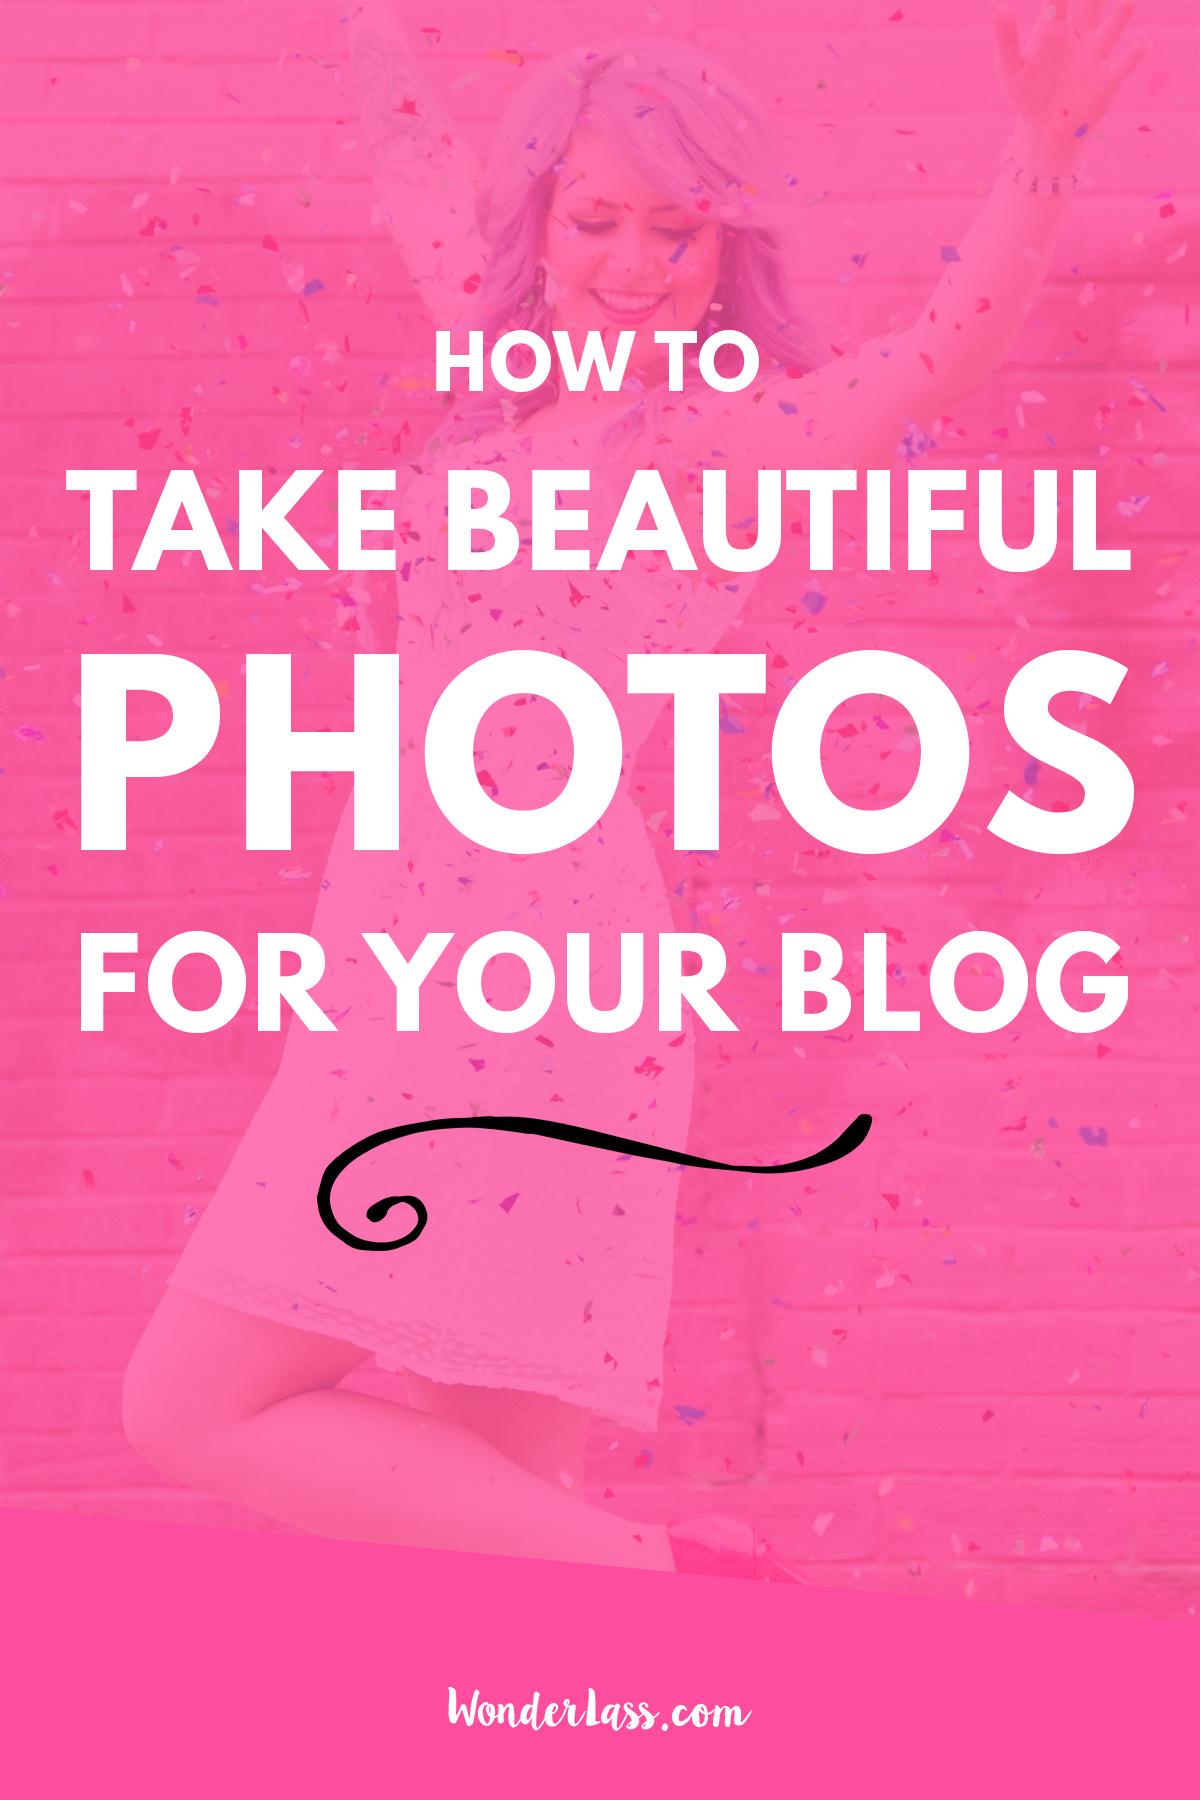 The Ultimate Guide to Taking Beautifully Styled Blog Photos | learn how to take amazing photos for your blog, website and online business! | Wonderlass